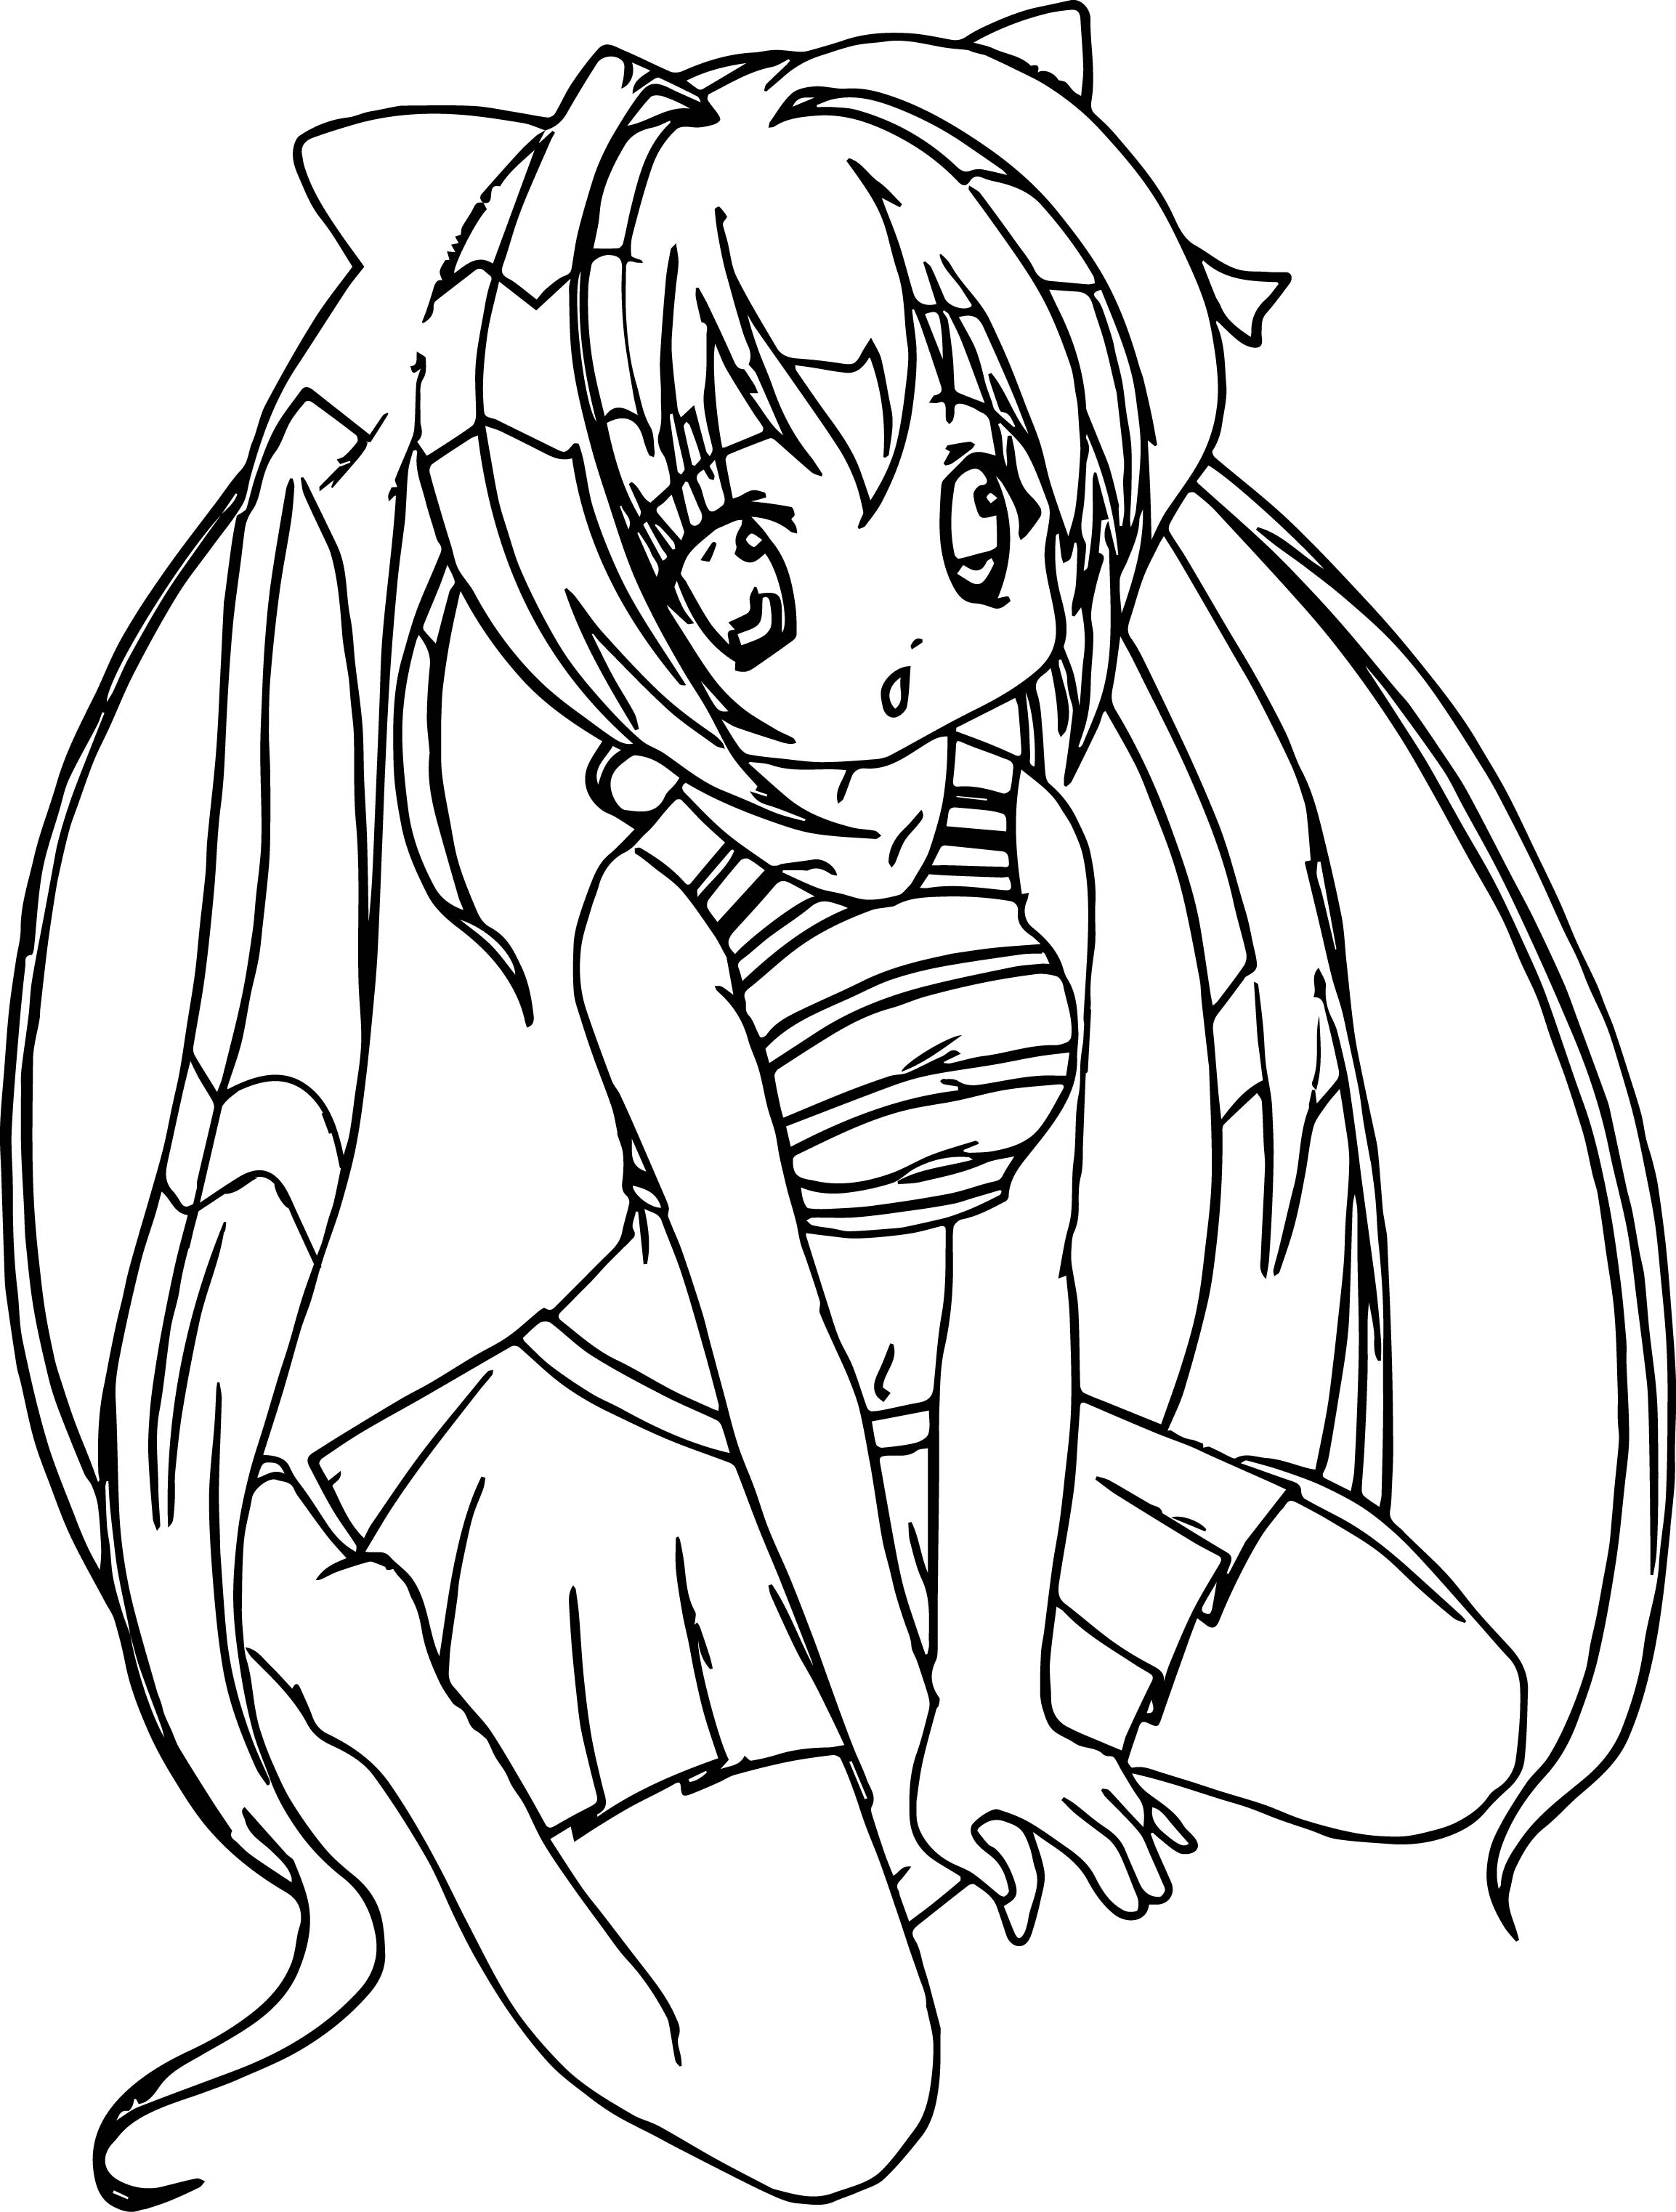 Anime Girl Student Coloring Page